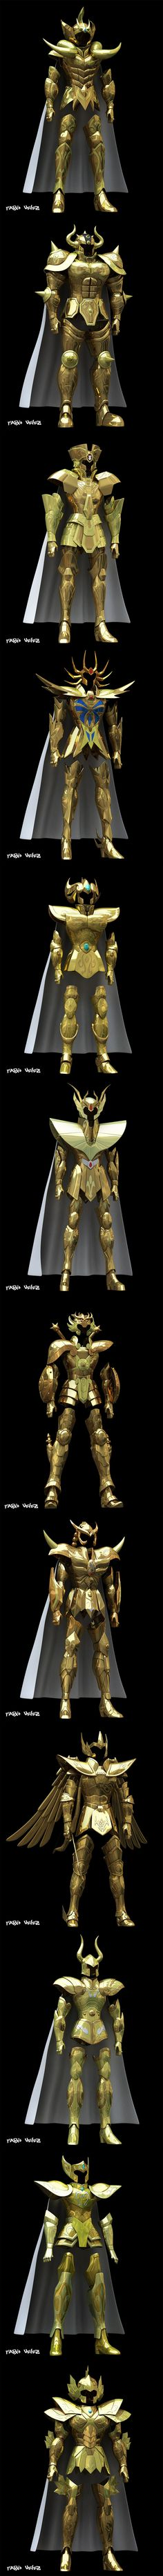 3d CGI Gold Cloths, Saint Seiya